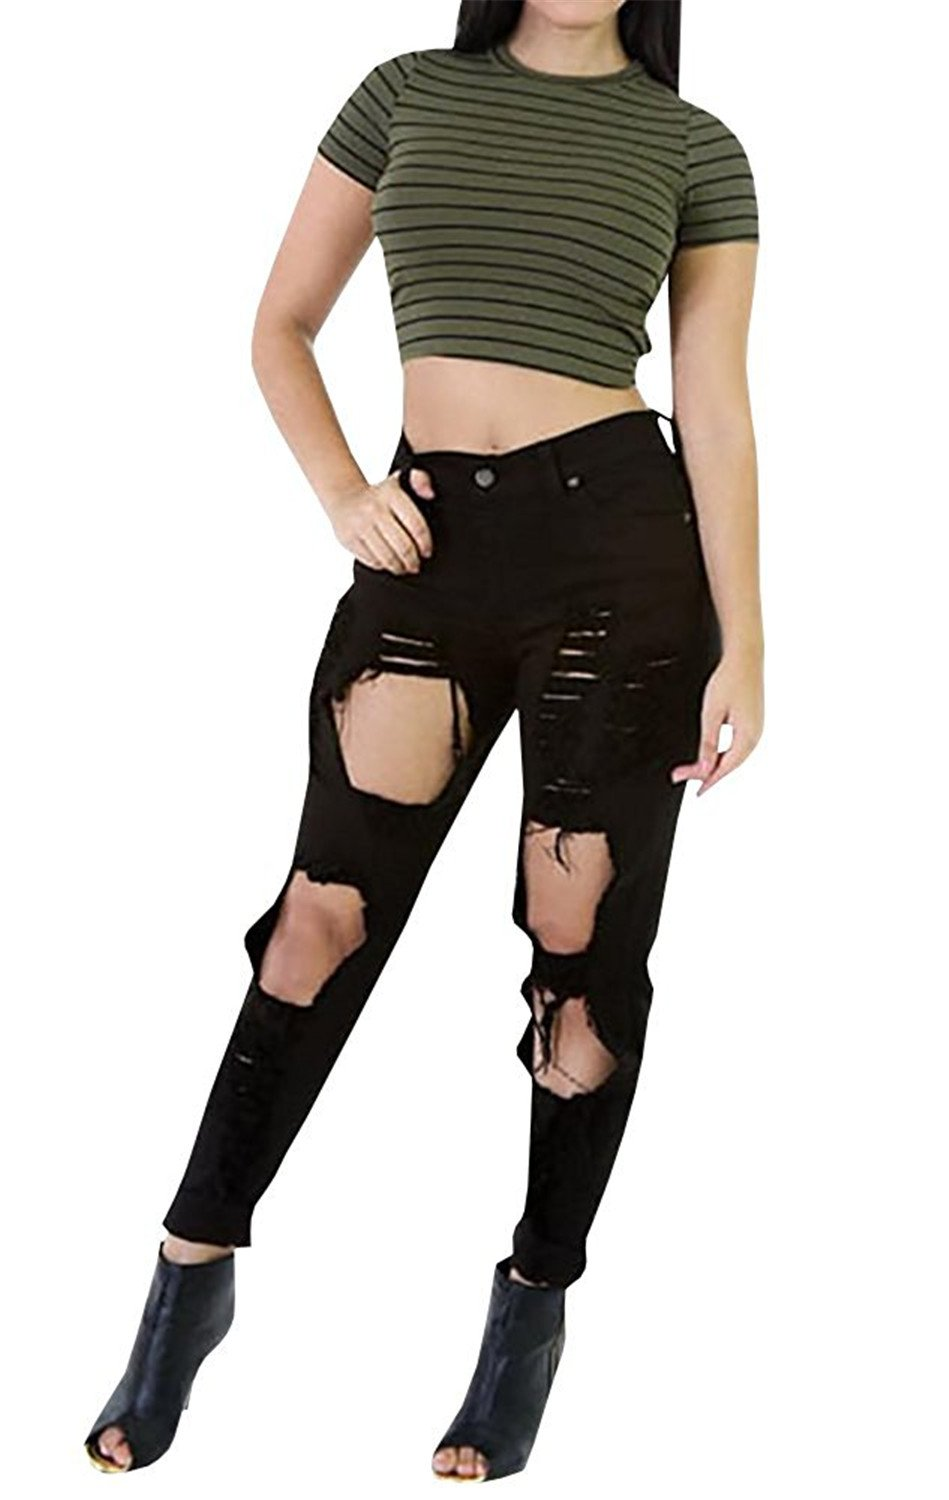 Cheryl Bull Fashion Women Big Holes Ripped Jeans Skinny High Waisted Pencil Pants Black White Plus Size Jeans by Cheryl Bull Jeans (Image #1)